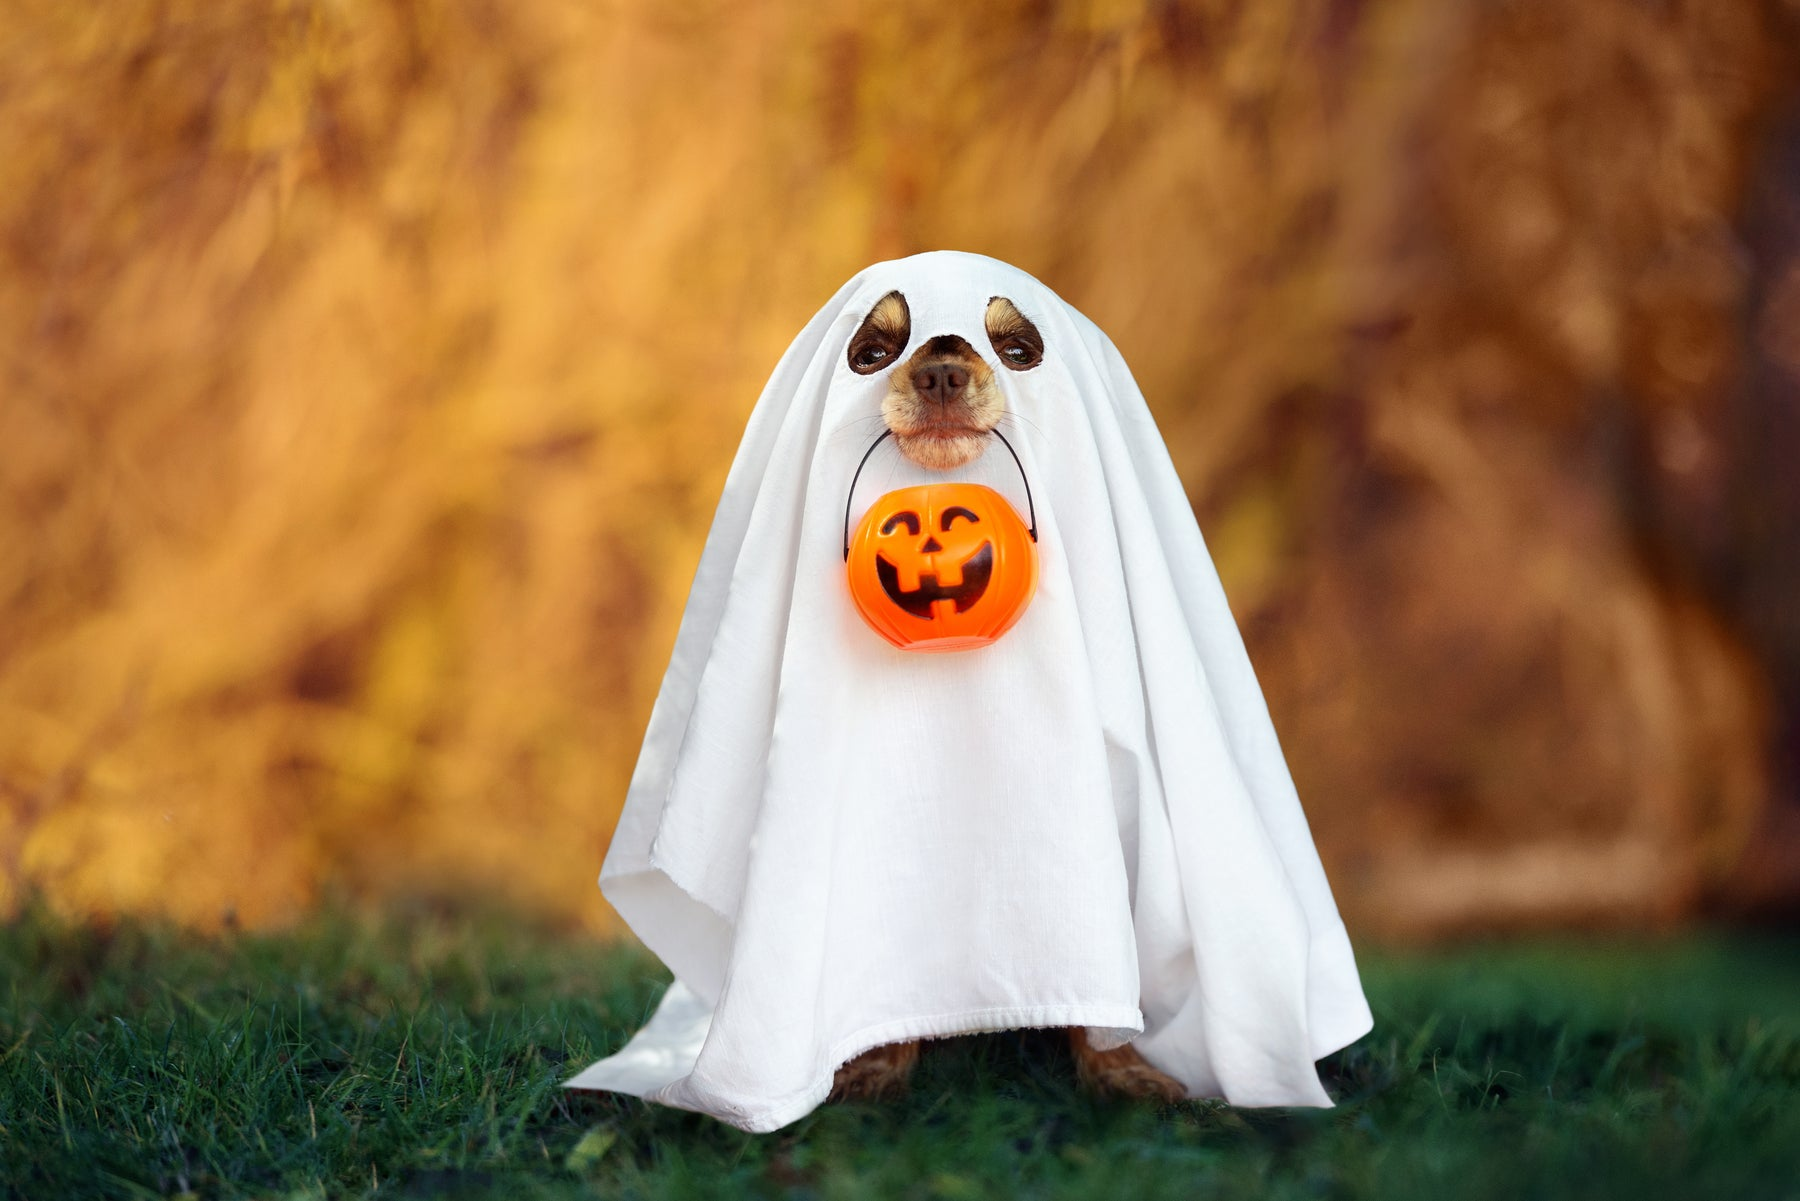 Keeping your pets safe at Halloween